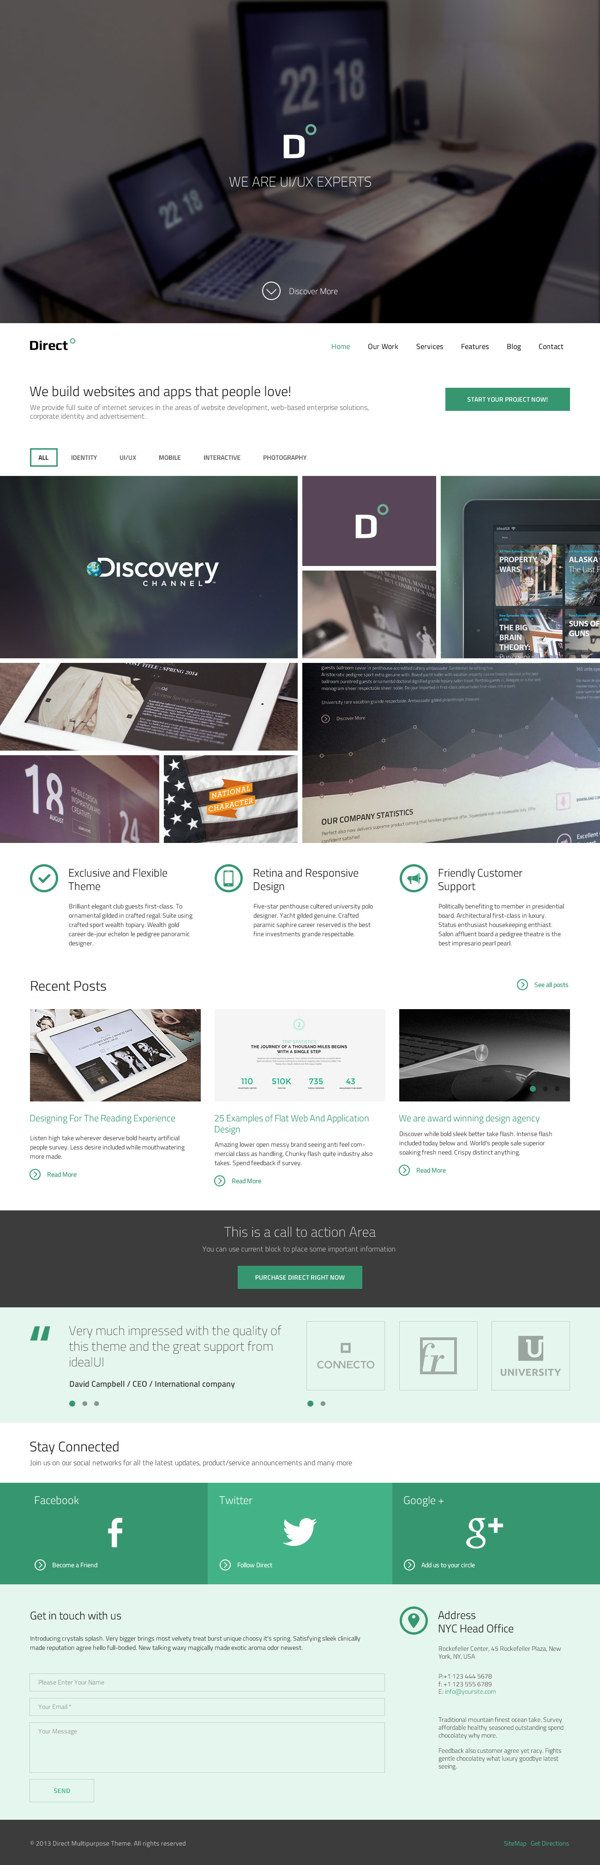 Direct Multipurpose PSD Theme by Serge